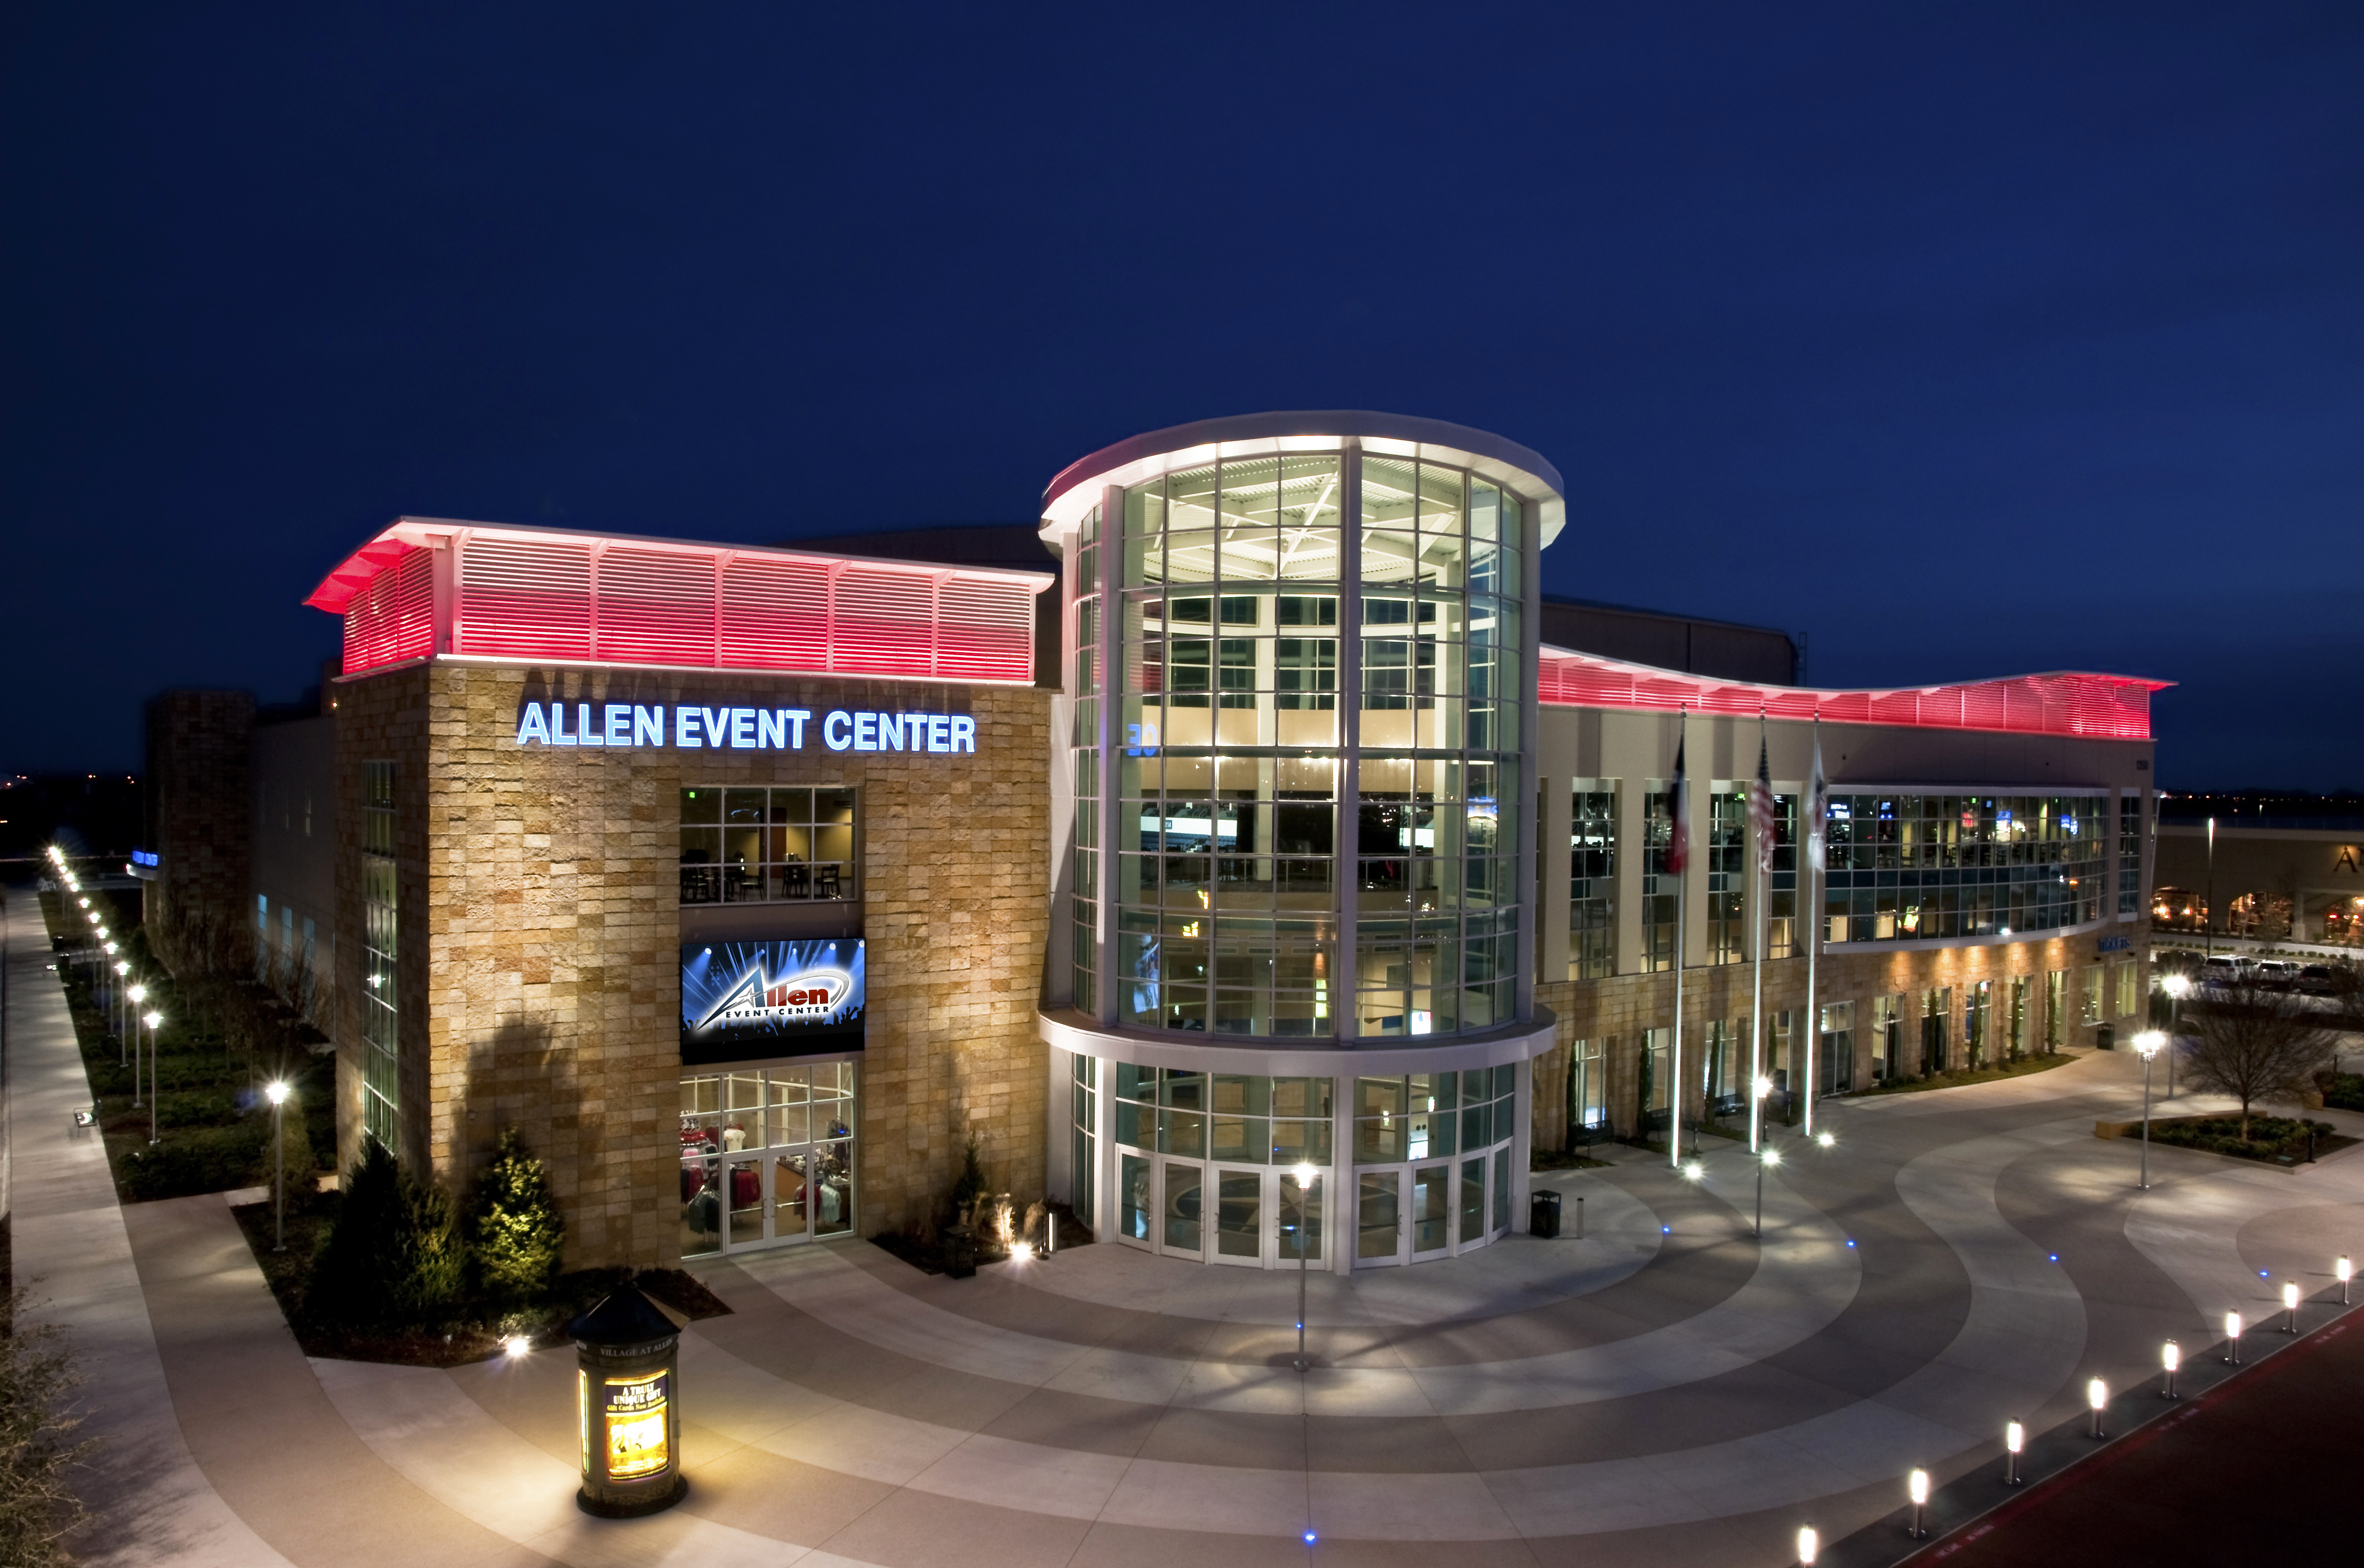 Allen is home to three professional sports teams, hosts popular musical acts and has a variety of en